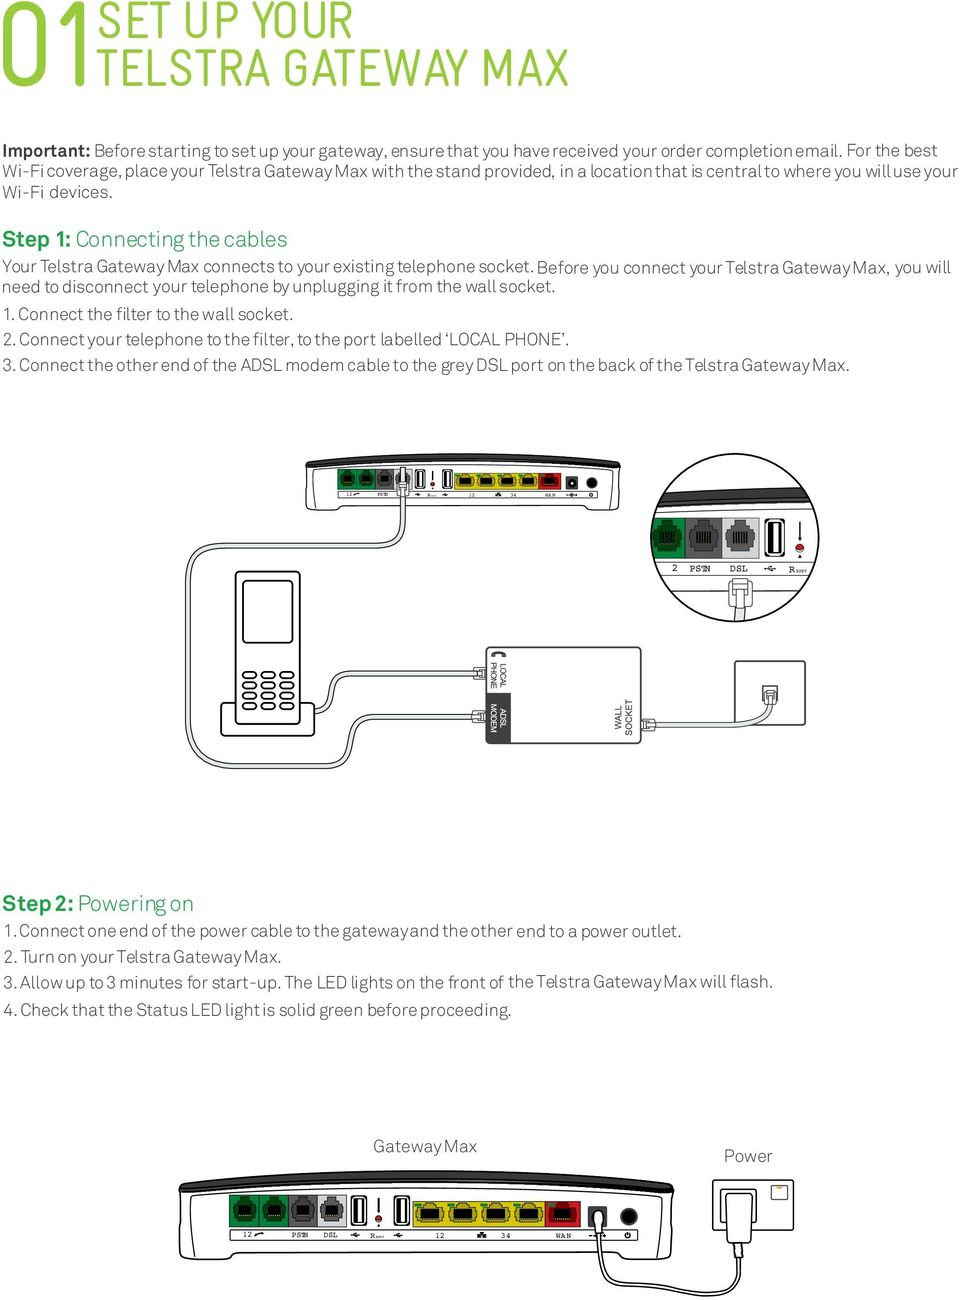 Get Connected With Your Telstra Gateway Max Quick Start Guide Fold Home Phone Wiring Diagram Step 1 Connecting The Cables Connects To Existing Telephone Socket